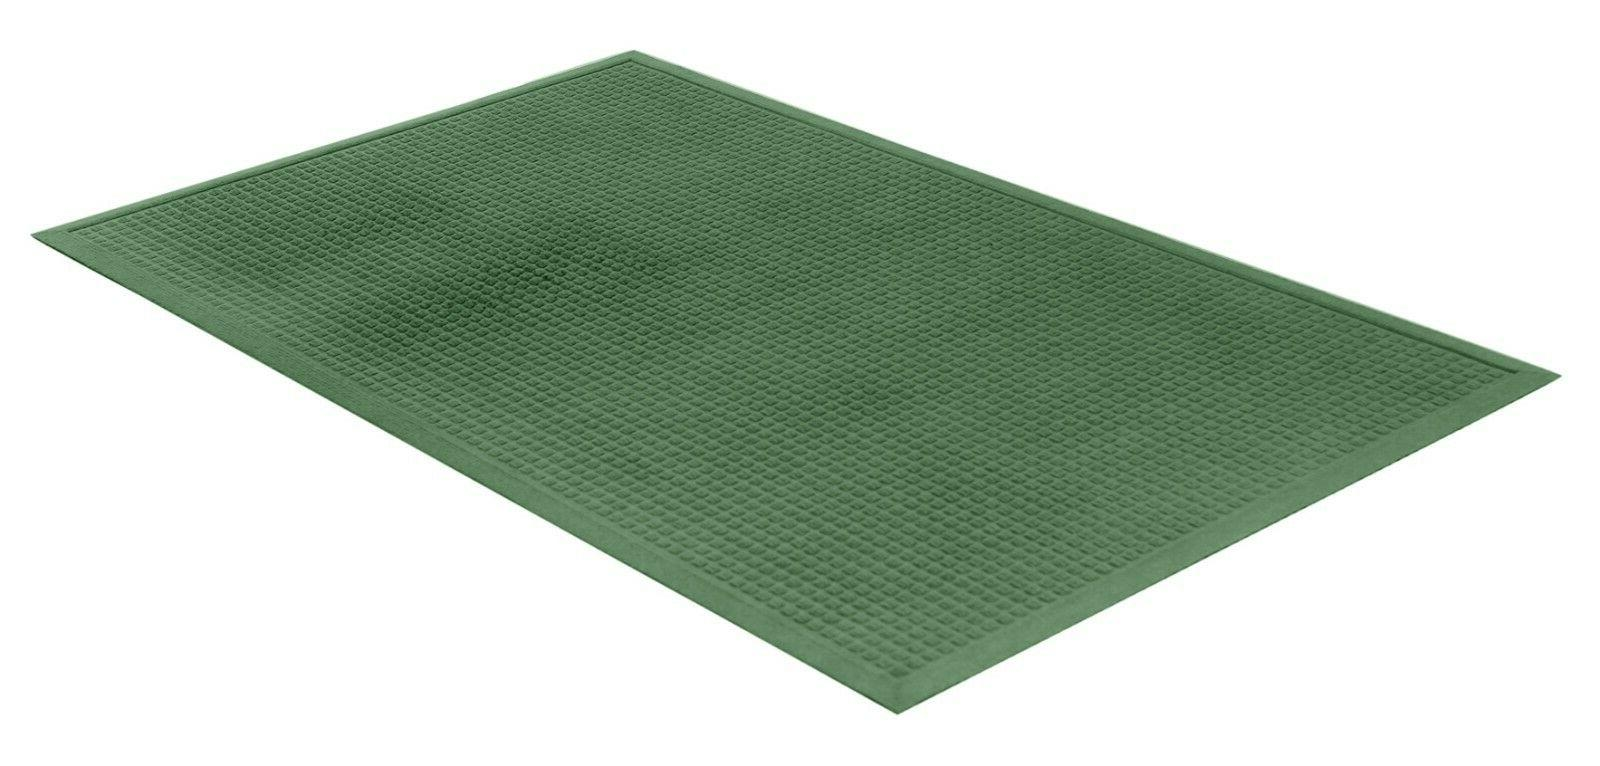 Kempf Polypropylene Indoor Mat, Multiple Sizes